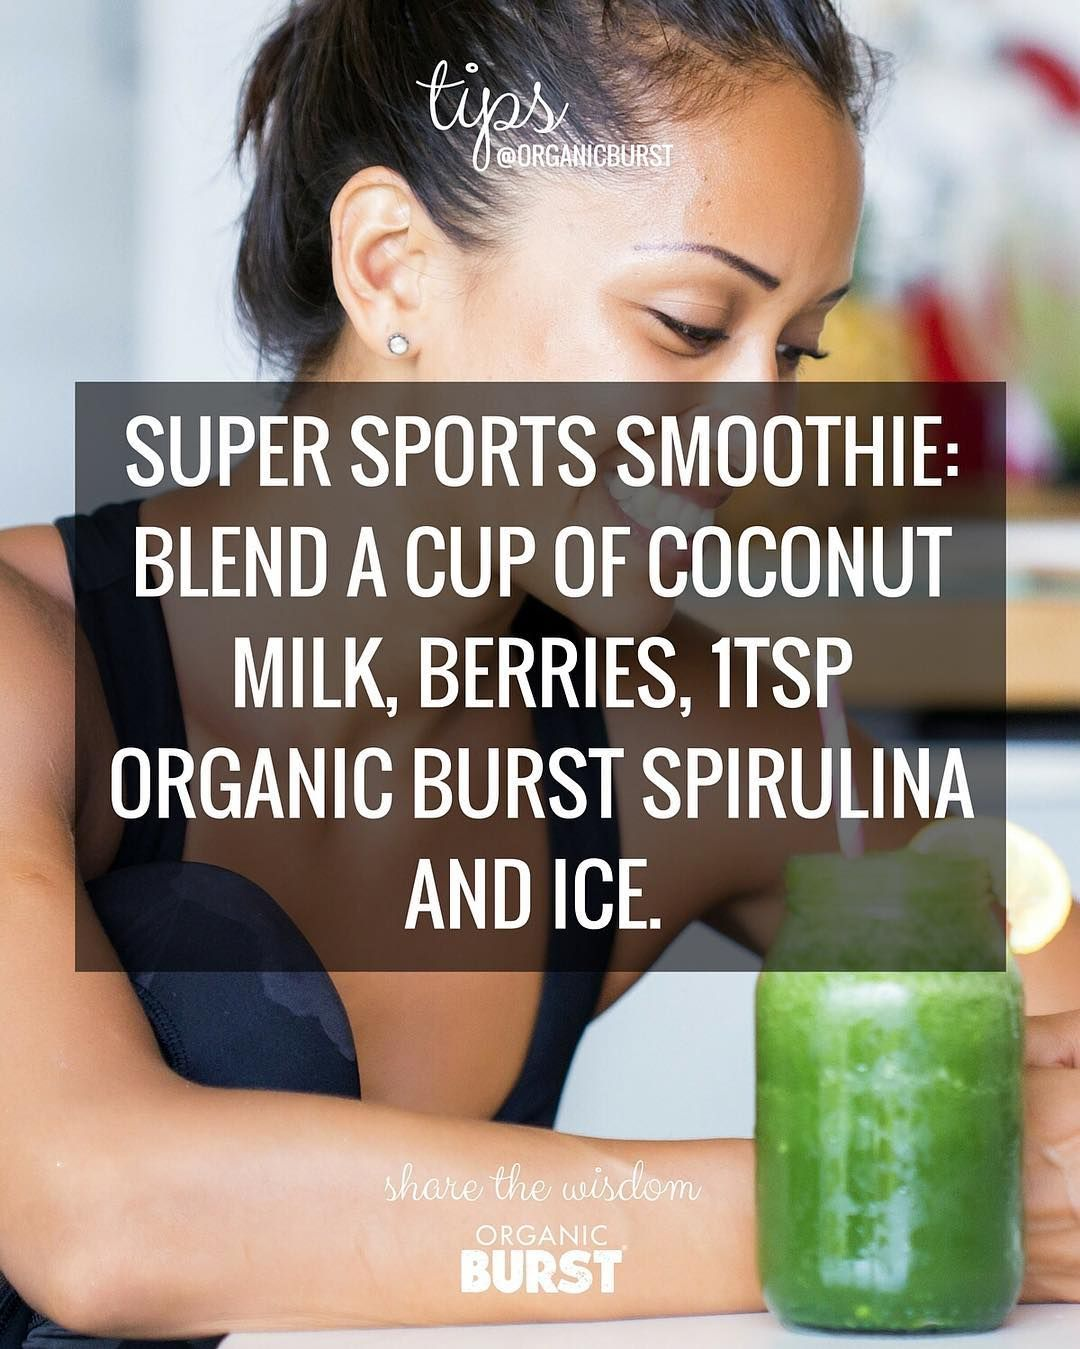 Pin by Kristy on Healthy (With images) | Organic ...